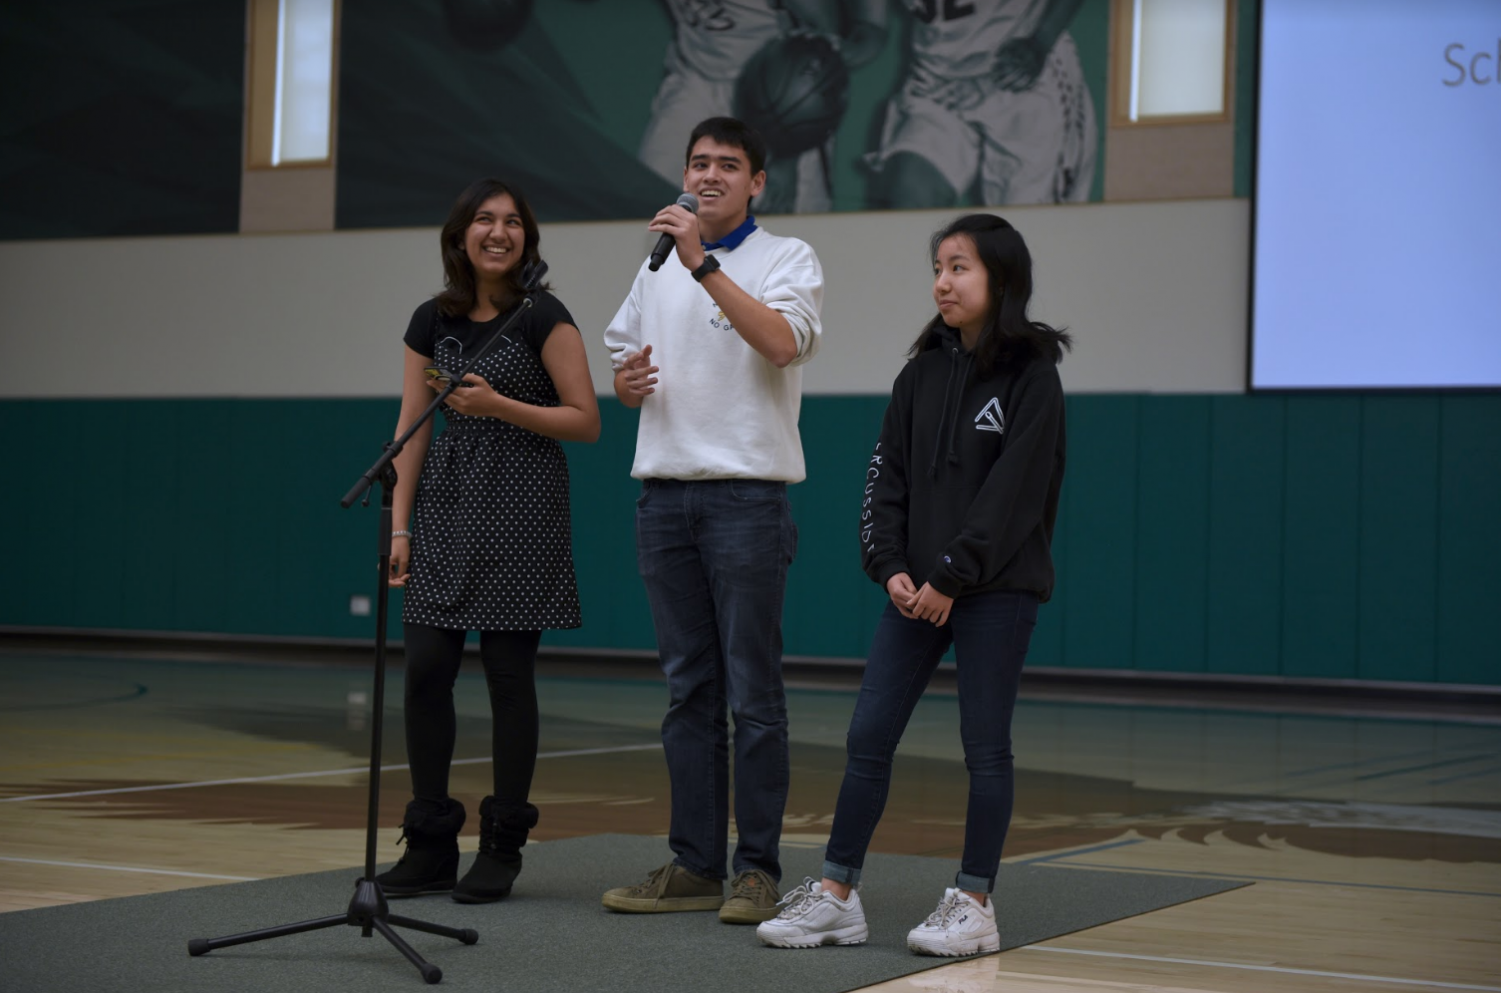 Presidents of the Chinese National Honor Society (CNHS), French National Honor Society (FNHS) and Japanese National Honor Society (JNHS) Sana Pandey (12), Grant Miner (12) and Katie Chang (12), respectively from left to right, announce the three club's upcoming shared club week. The three clubs will take turns selling cultural snacks during lunch and after school this week.